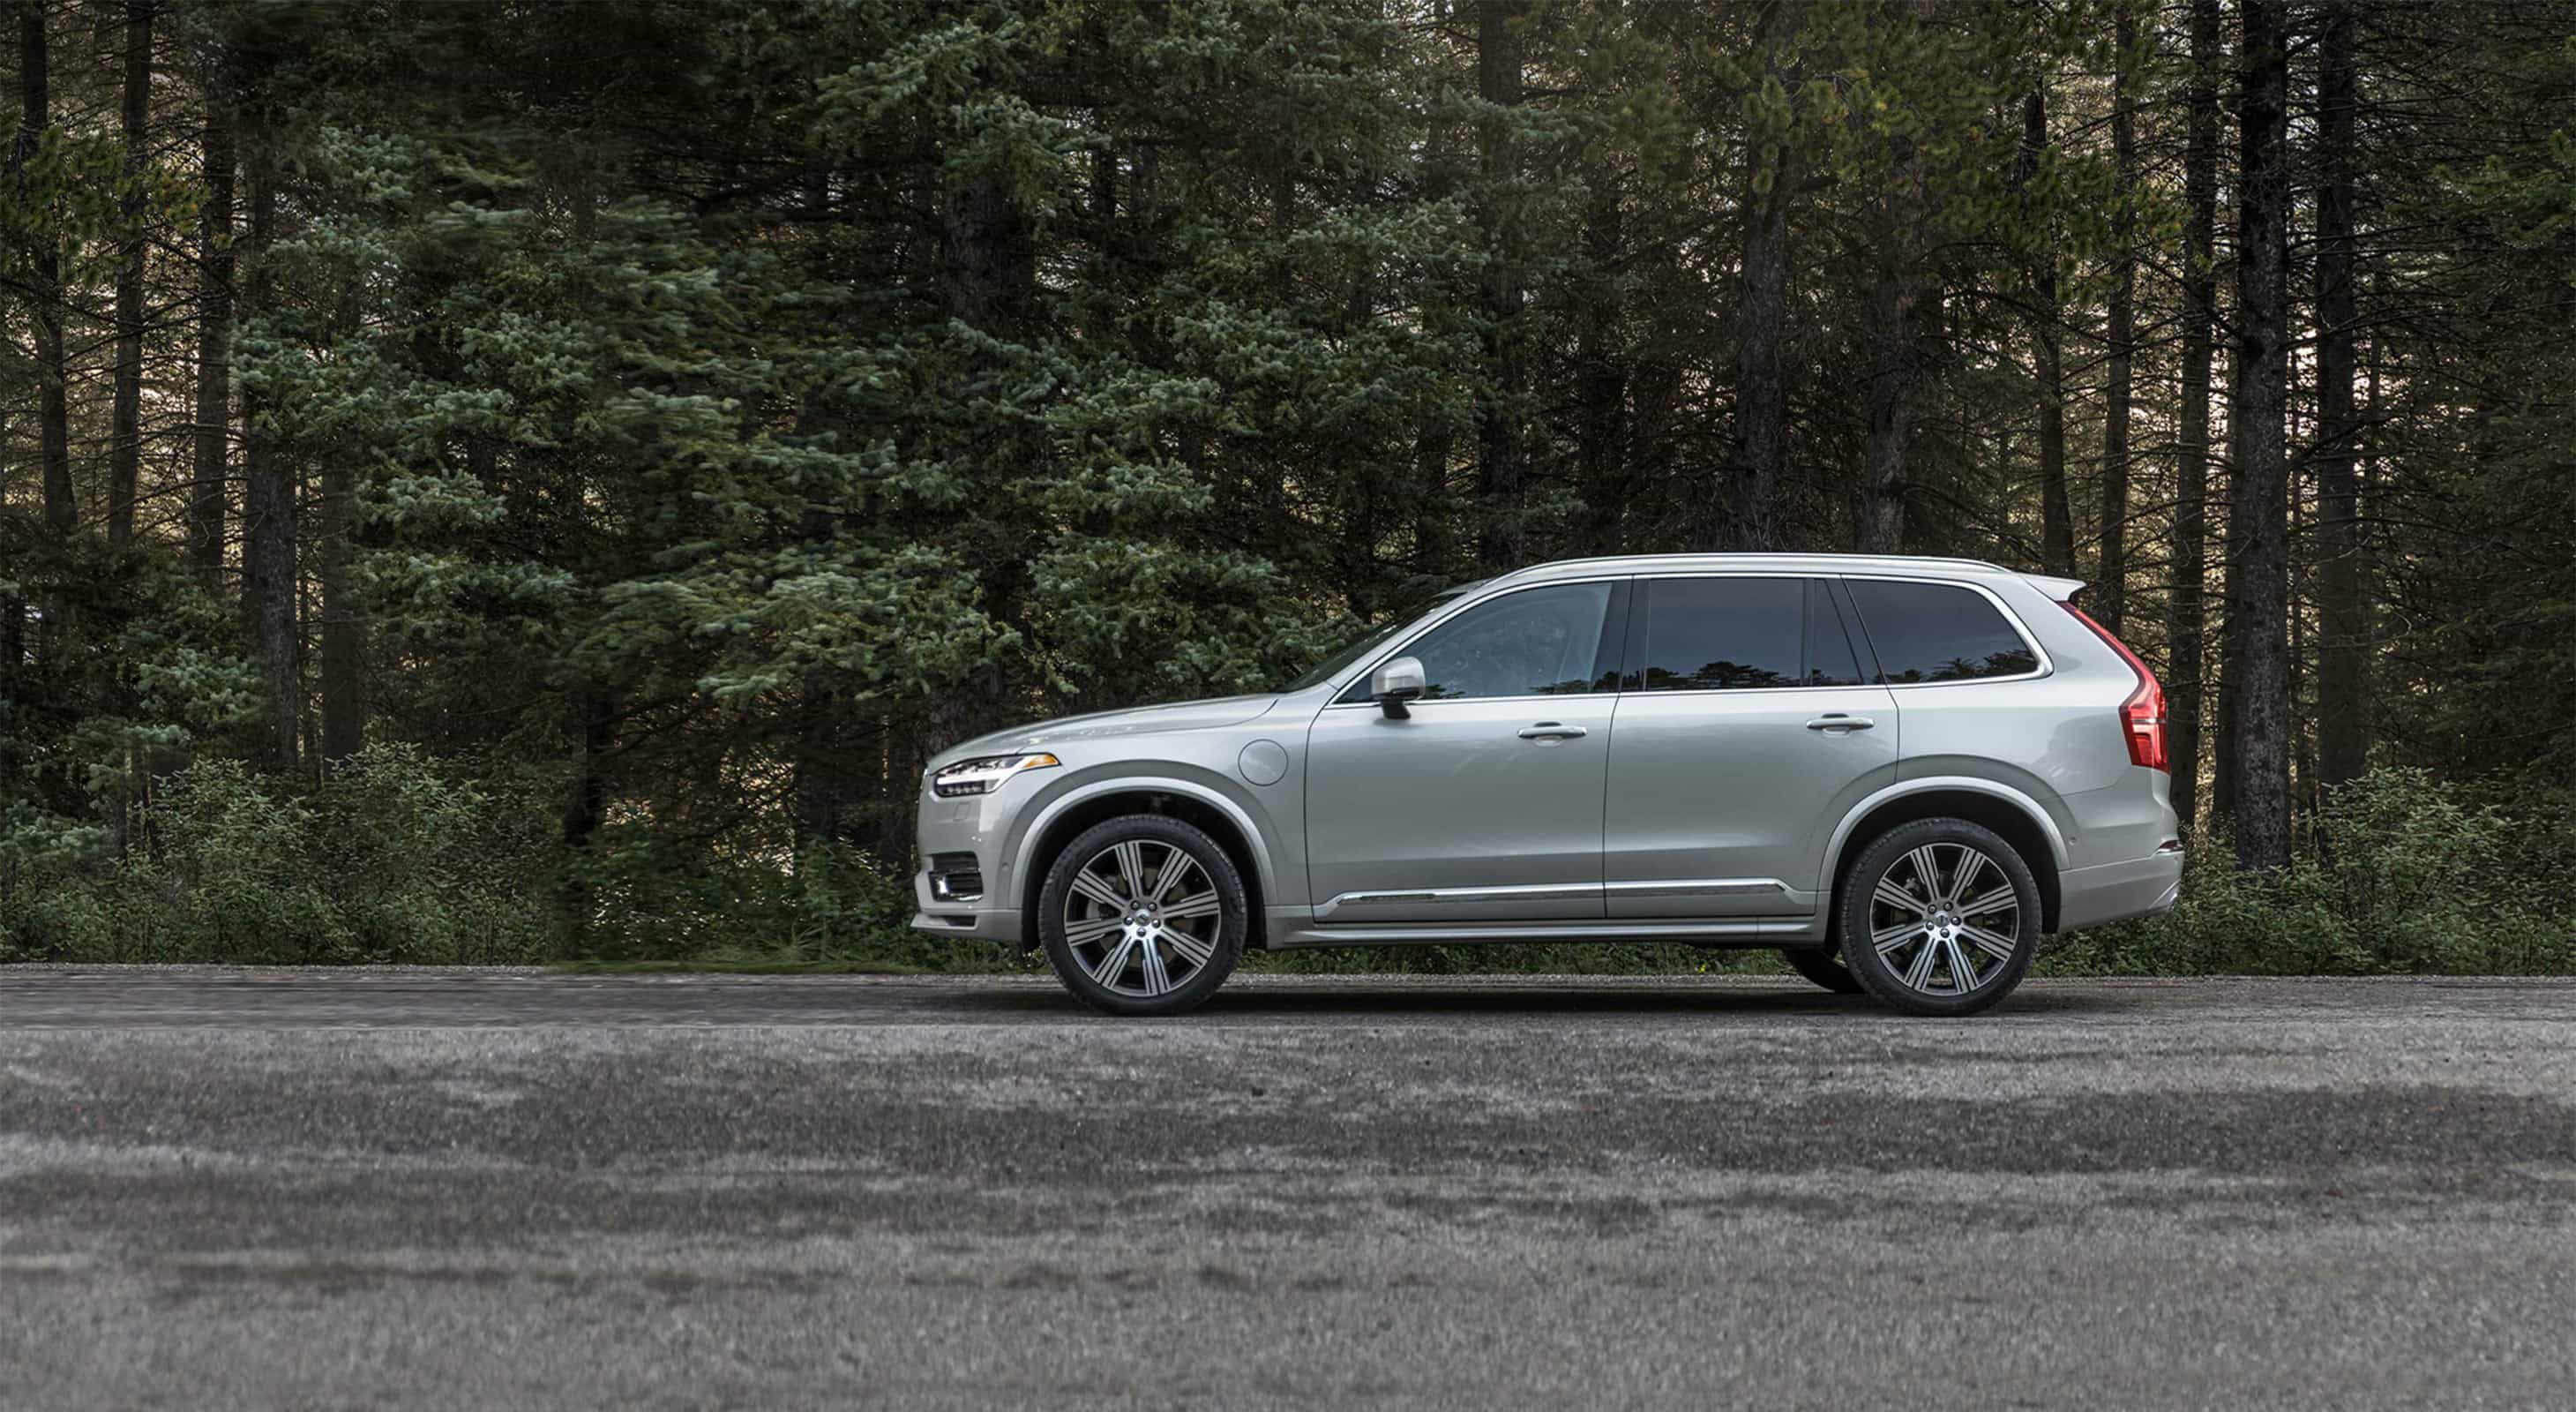 Massachusetts road trip in a Volvo SUV